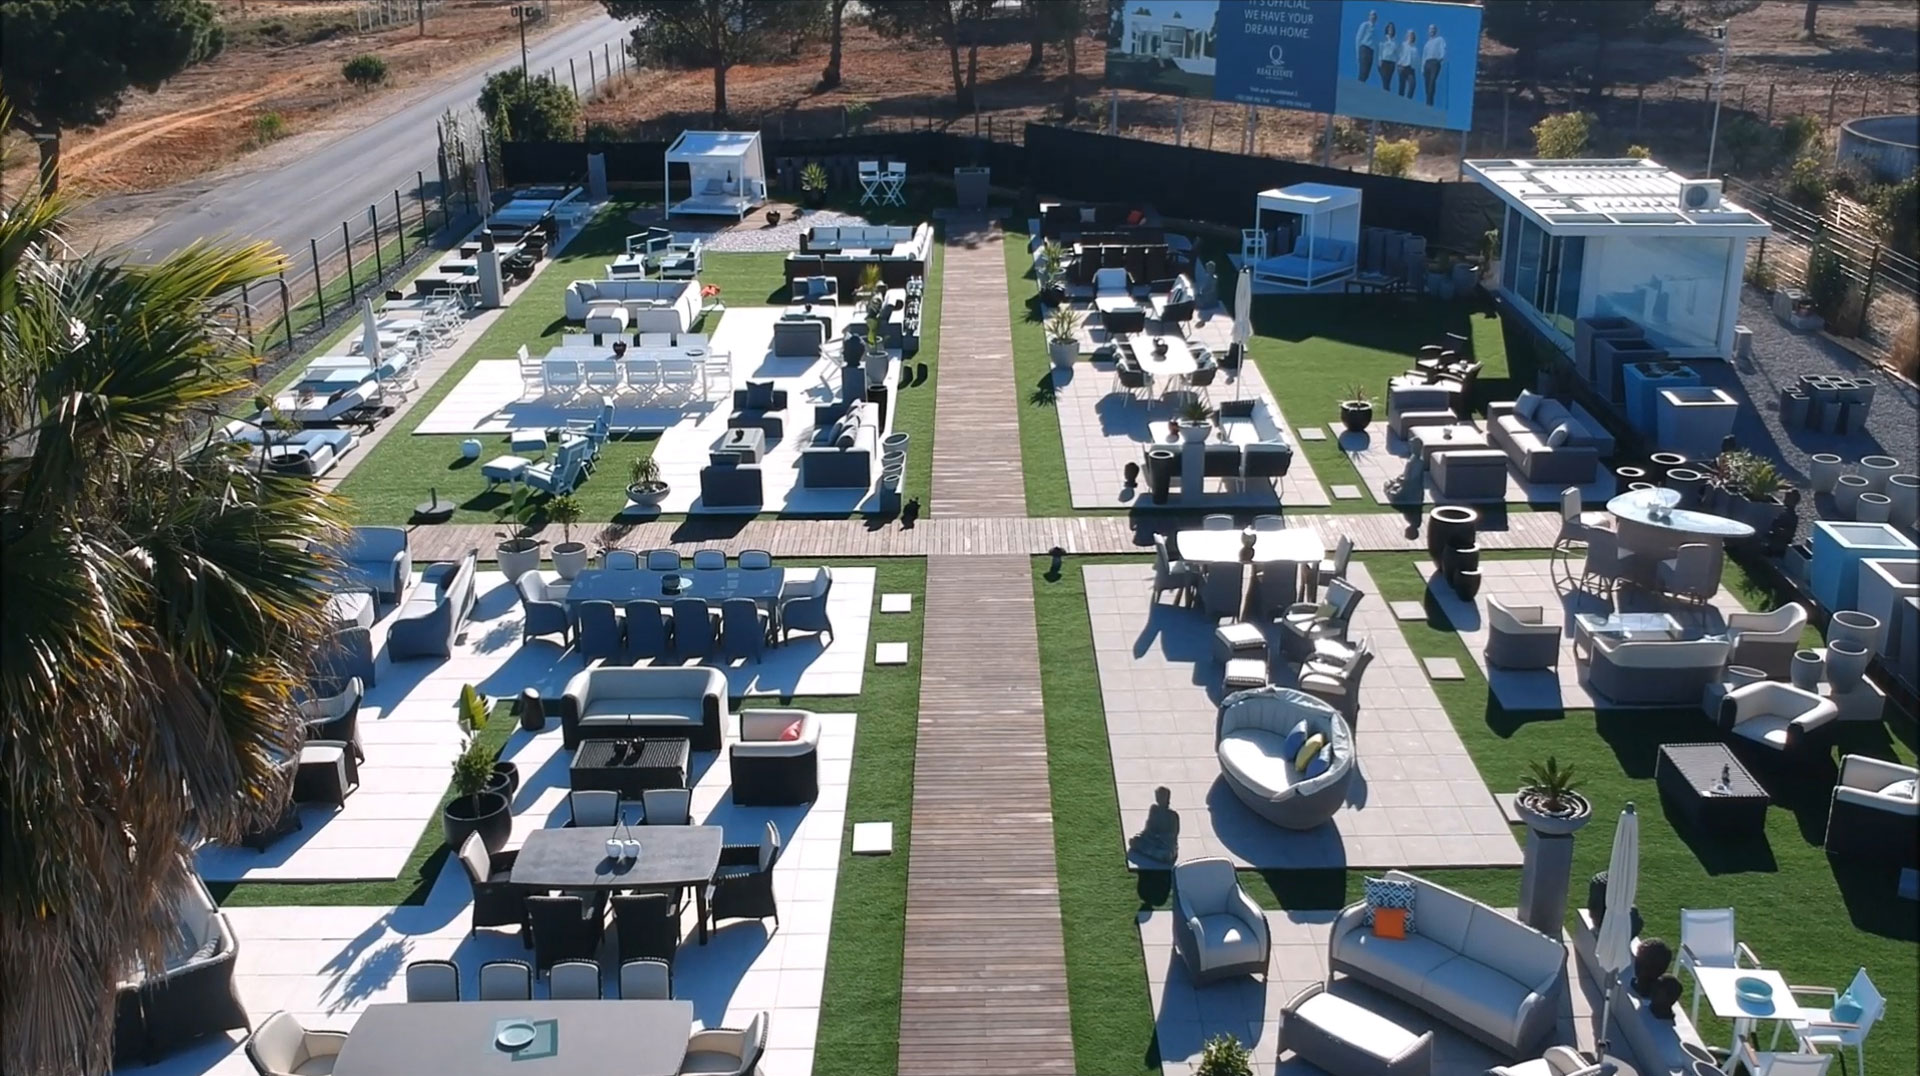 Vale do Lobo - Quinta do Lago Showroom Outdoor Furniture in the Algarve - Garden Furniture -Quinta do Lago - Vale do Lobo - Algarve - Vilamoura - Almancil - Tavira - Carvoeiro - Loulé- Portugal Status Concept